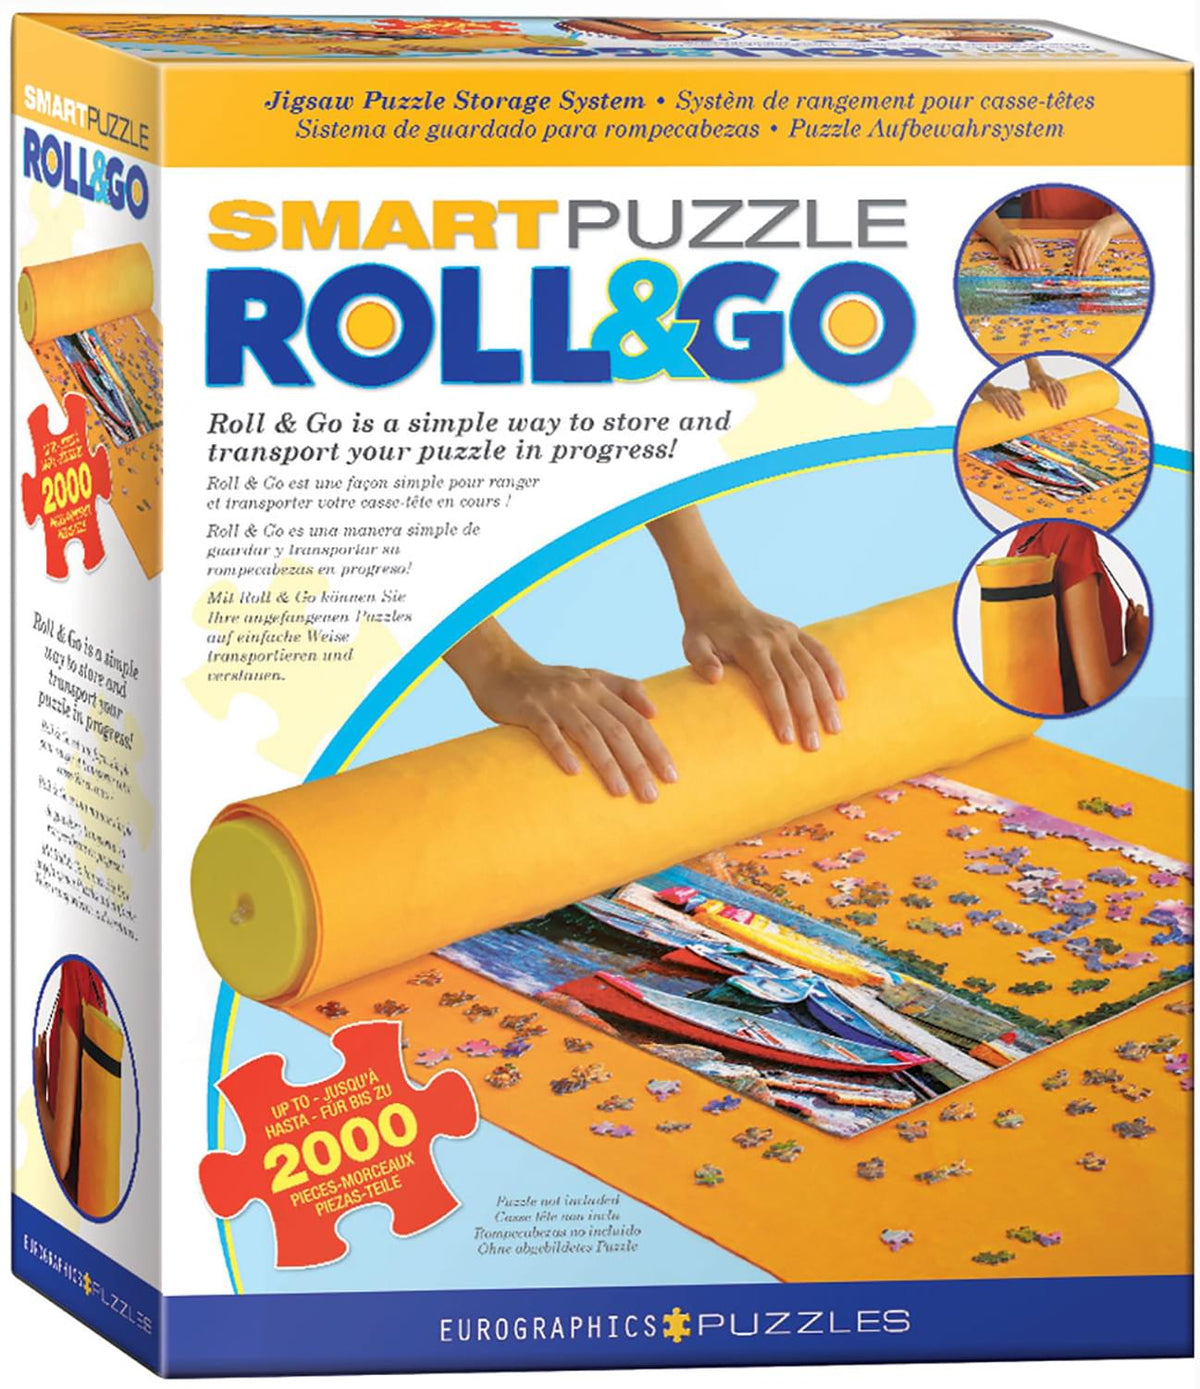 SmartPuzzle Roll & Go Jigsaw Puzzle Mat | Fits 2000 Pieces